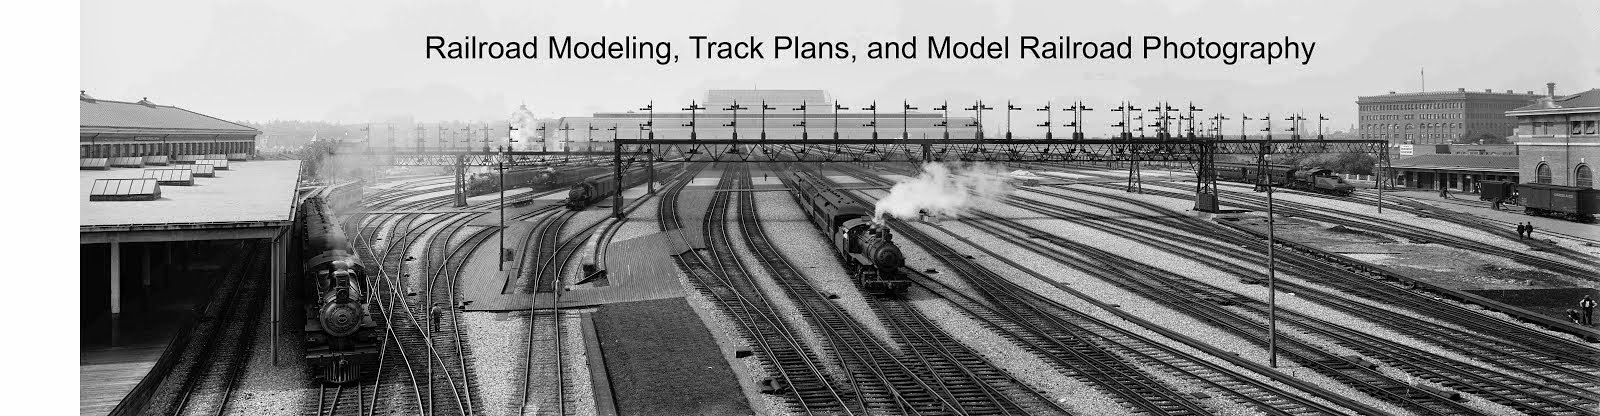 Railroad Modeling, Track Plans, and Model Railroad Photography